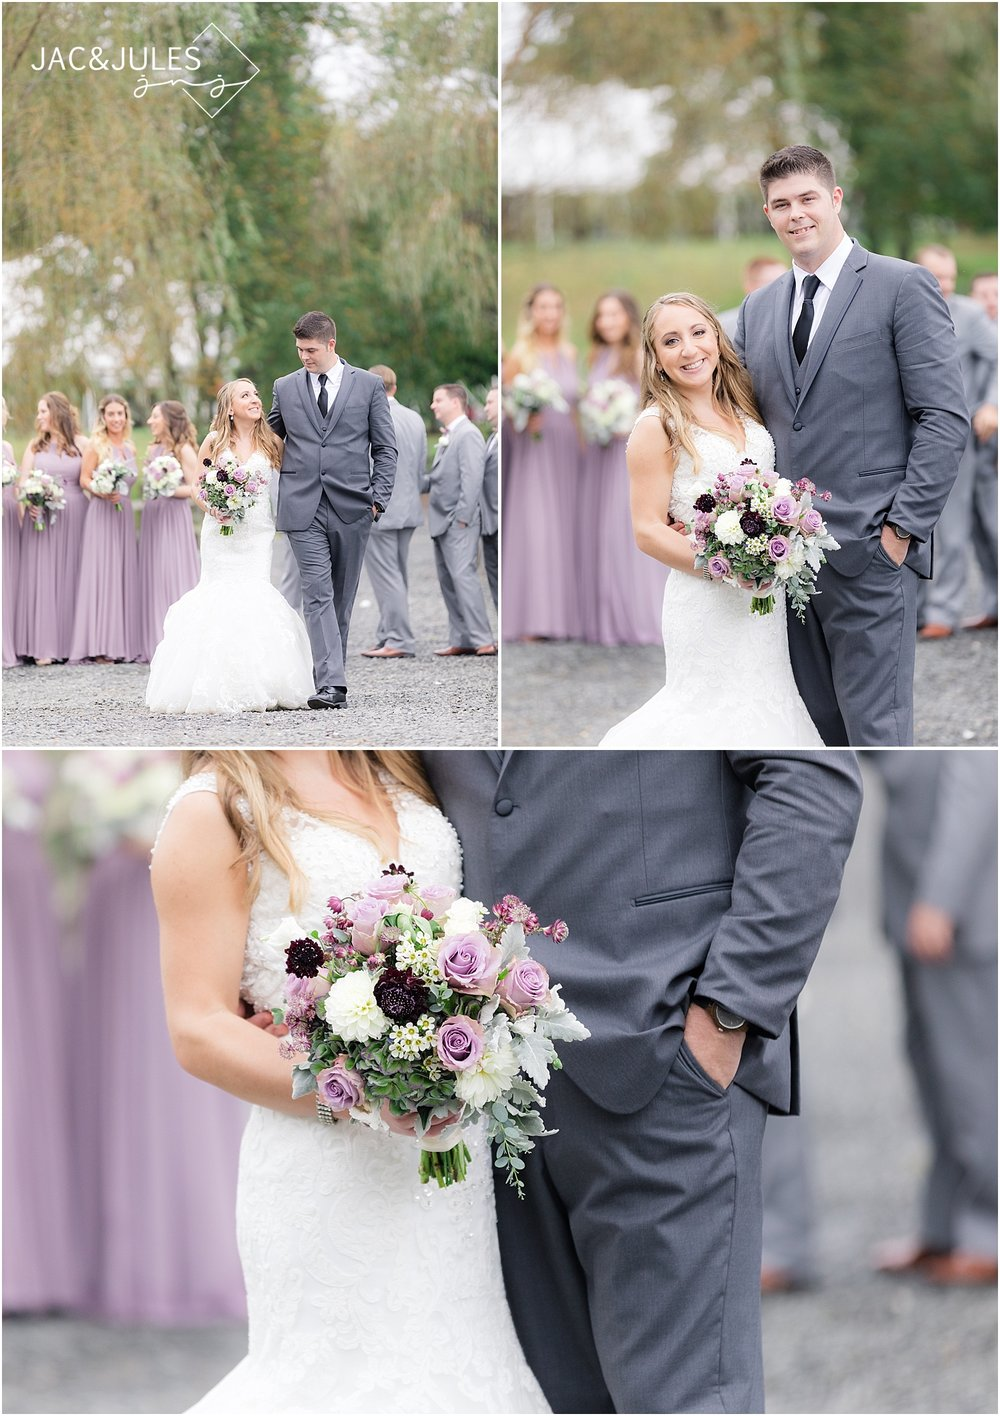 lavender bouquet and bridal party wedding photo at frogbridge